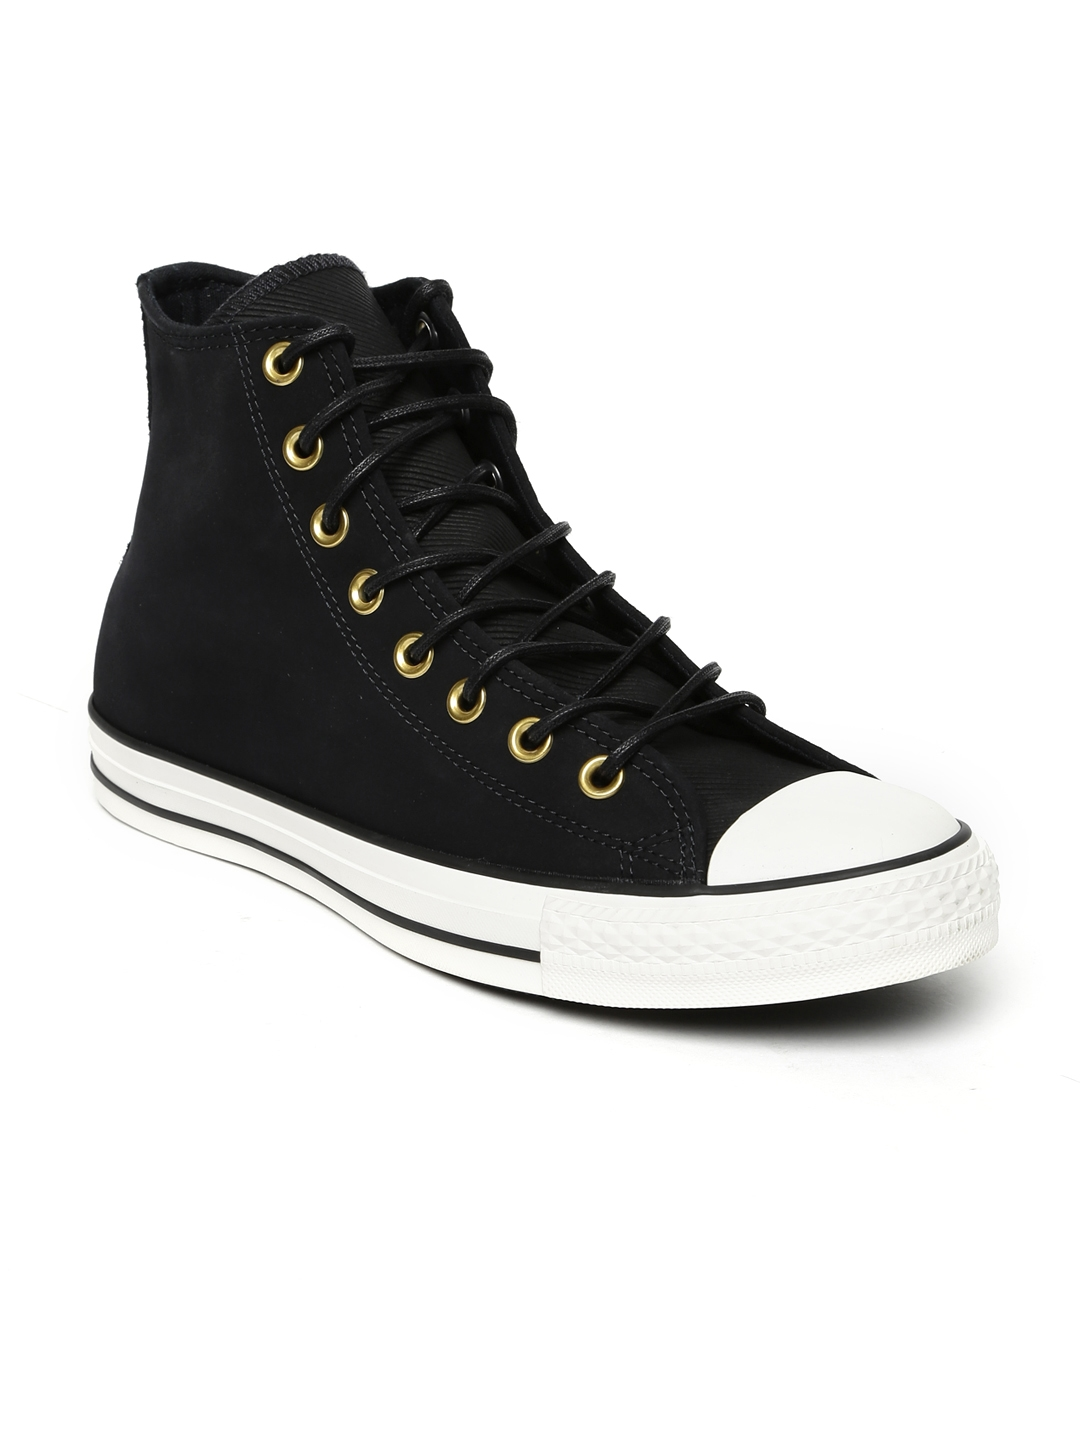 converse shoes high tops. converse men black solid high tops sneakers shoes i